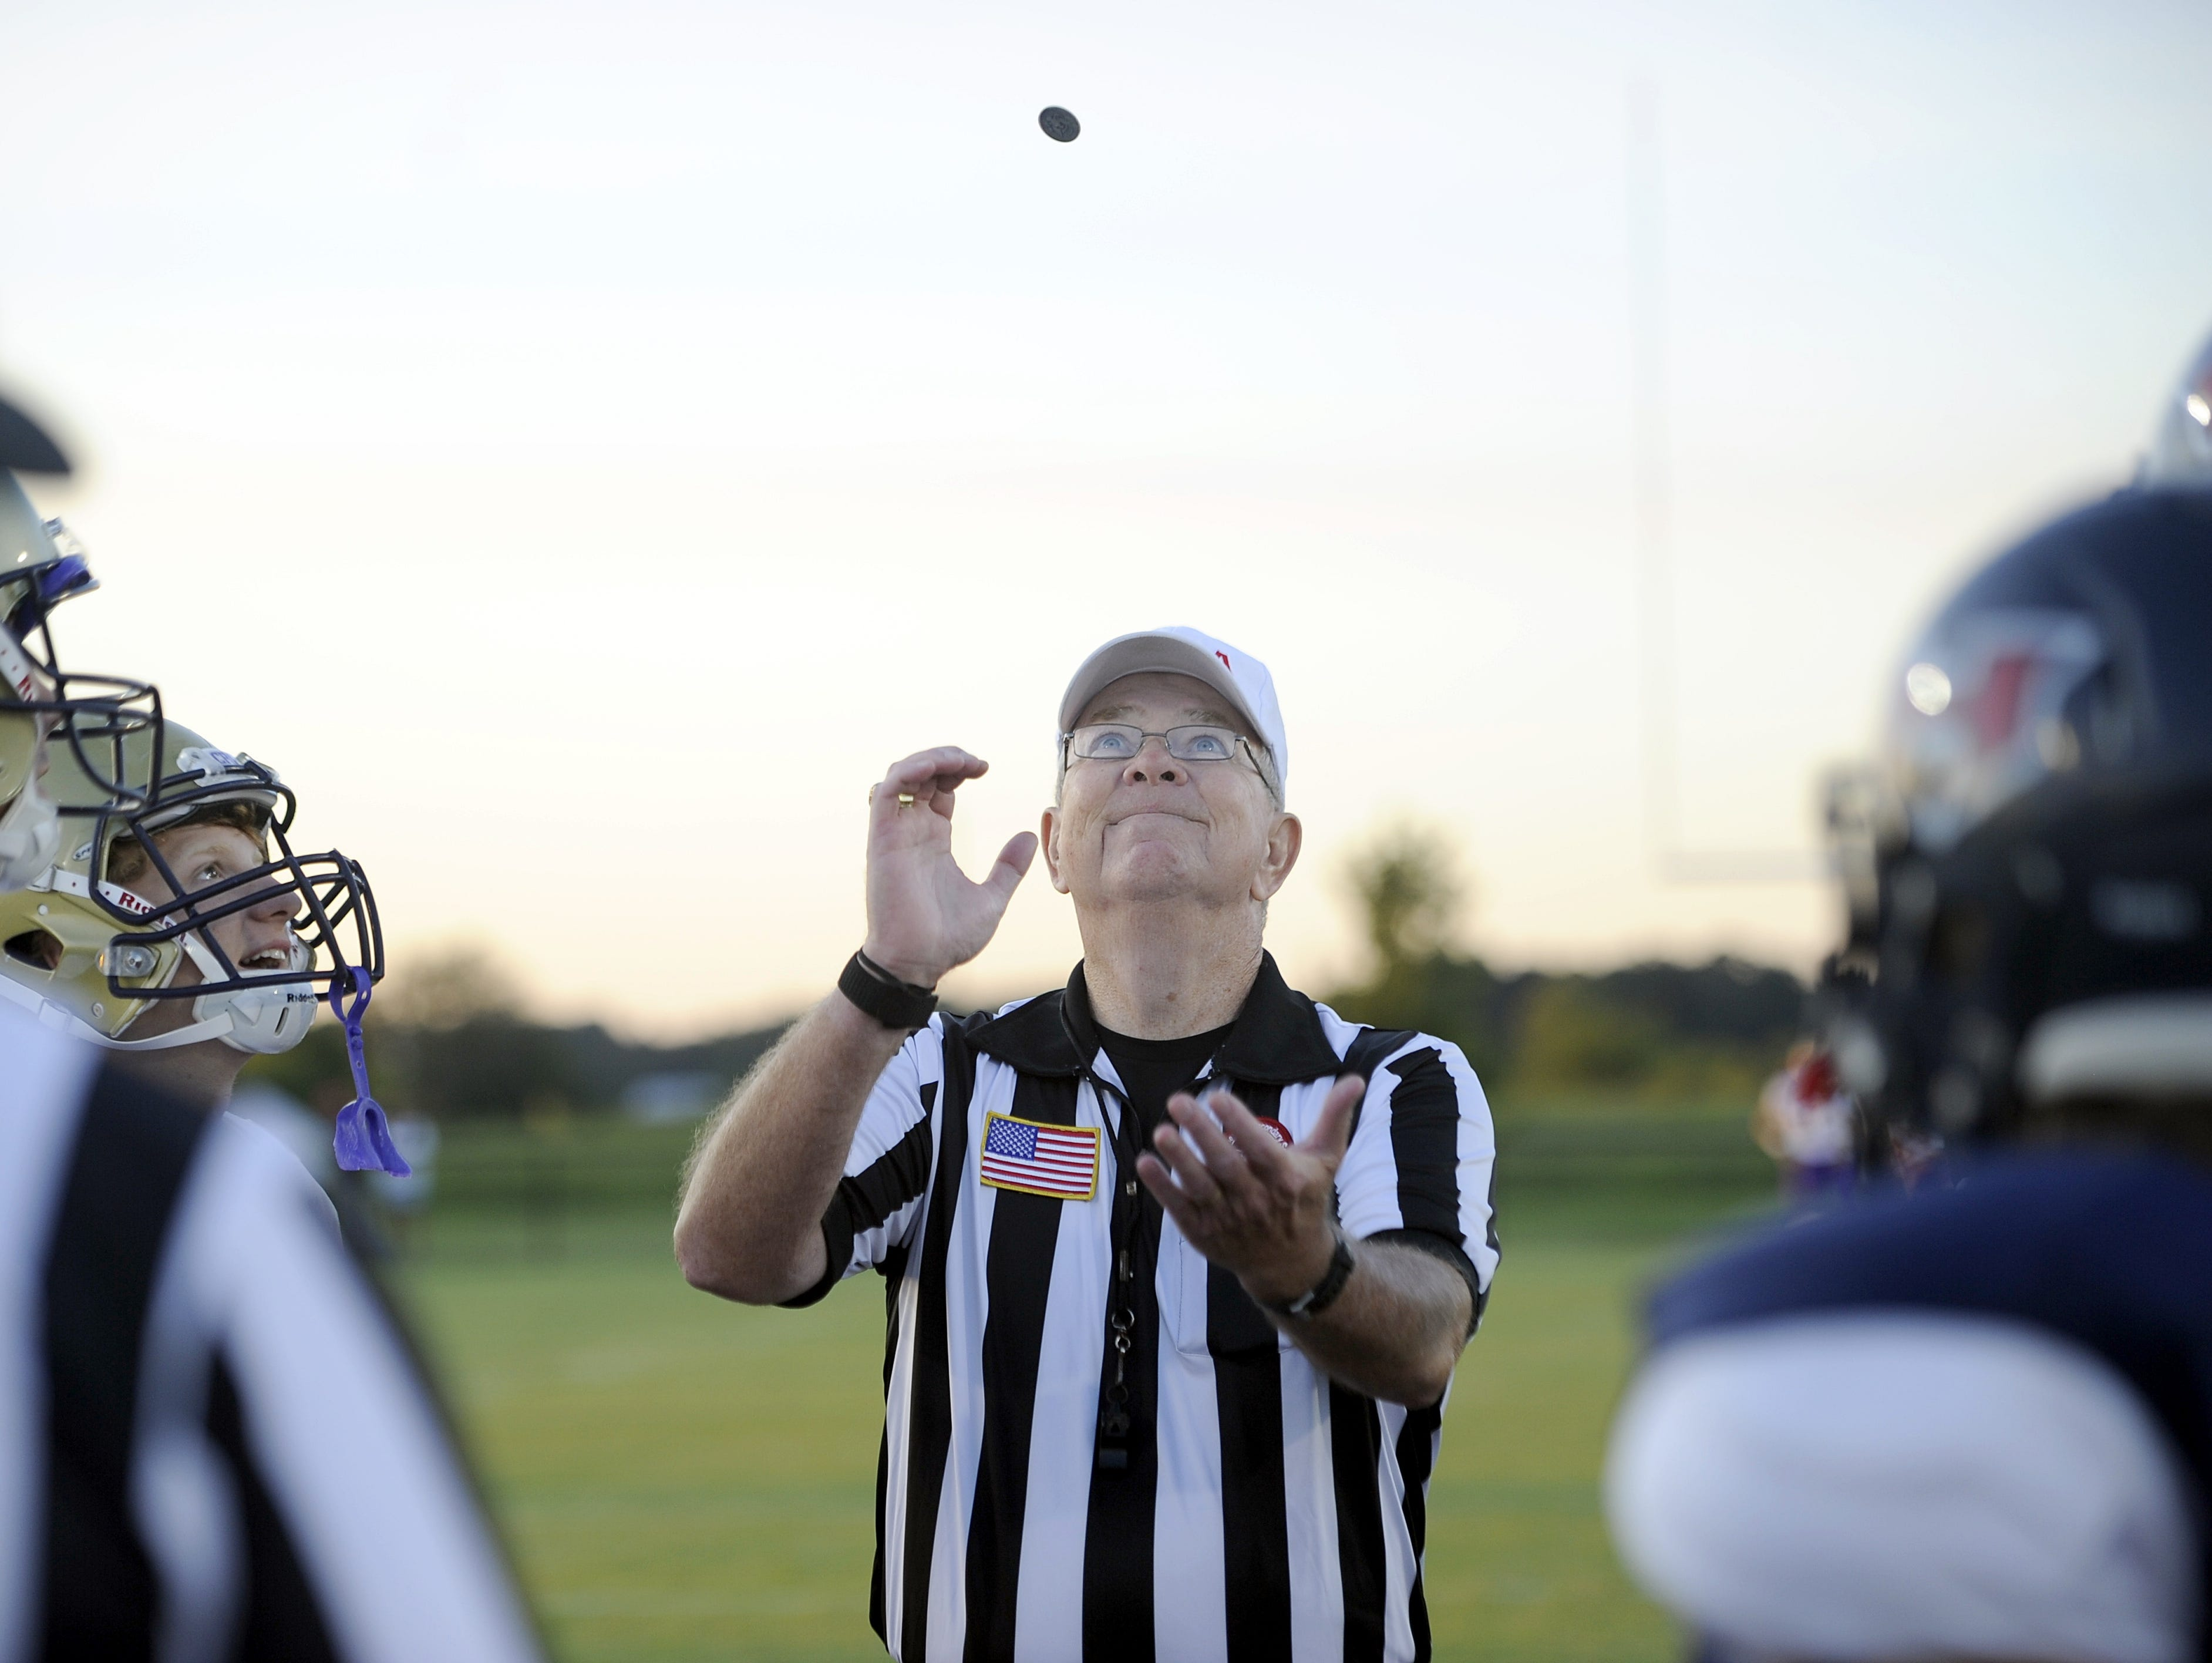 North Middle Football Officials Association referee Jody Swearingen flips the coin prior to kickoff of last Friday's Christ Presbyterian Academy/White House Heritage game.